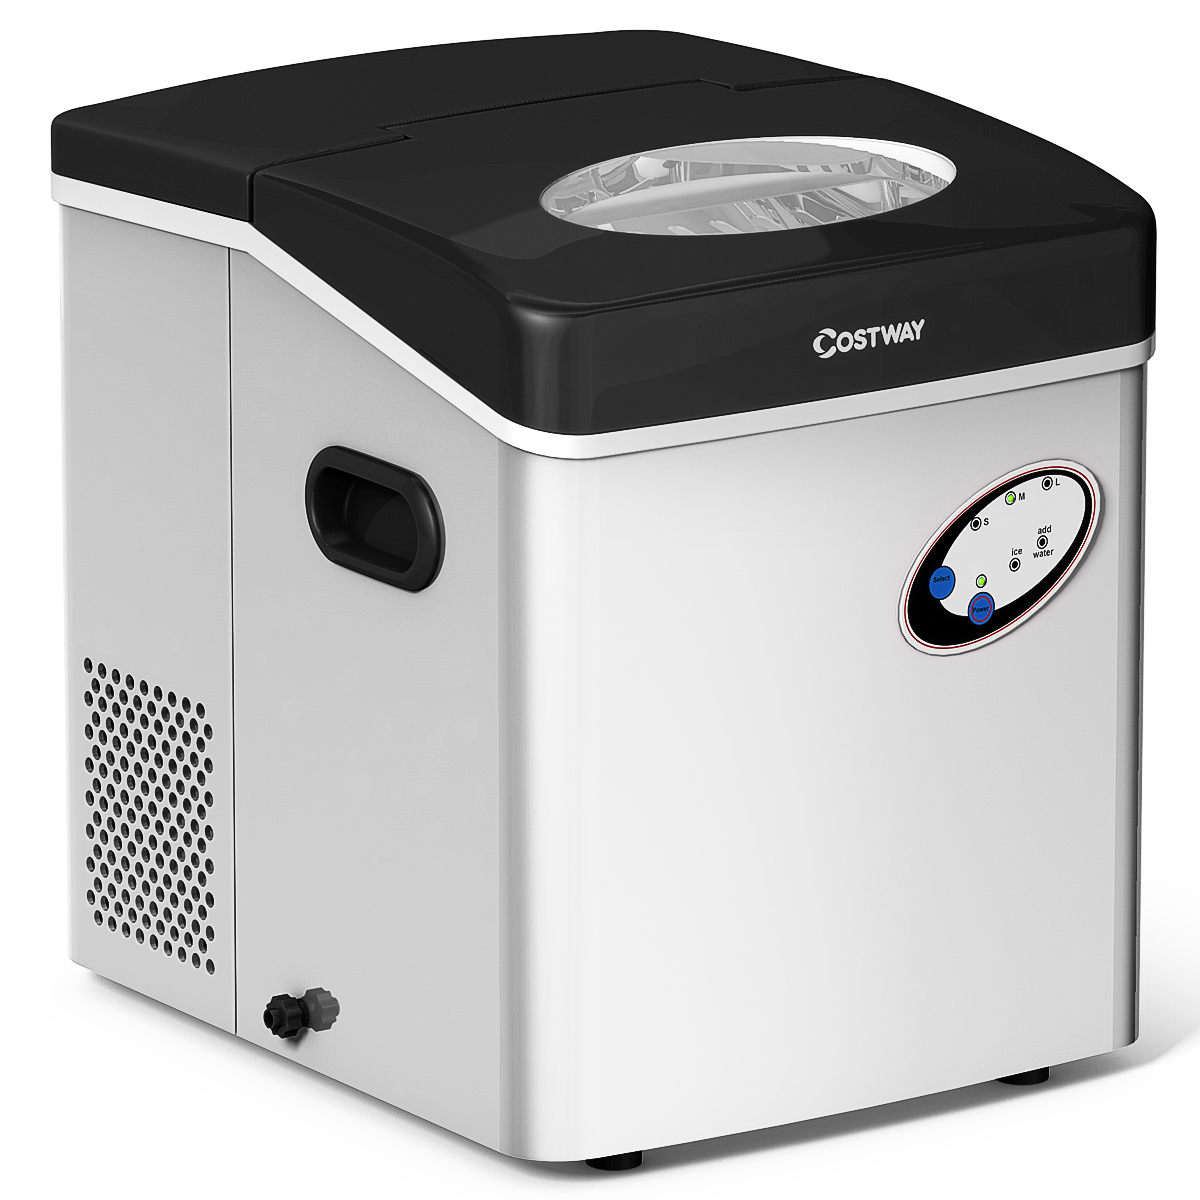 Costway Stainless Steel Ice Maker Countertop 48lb Per Day Freestanding Portable Icemaker